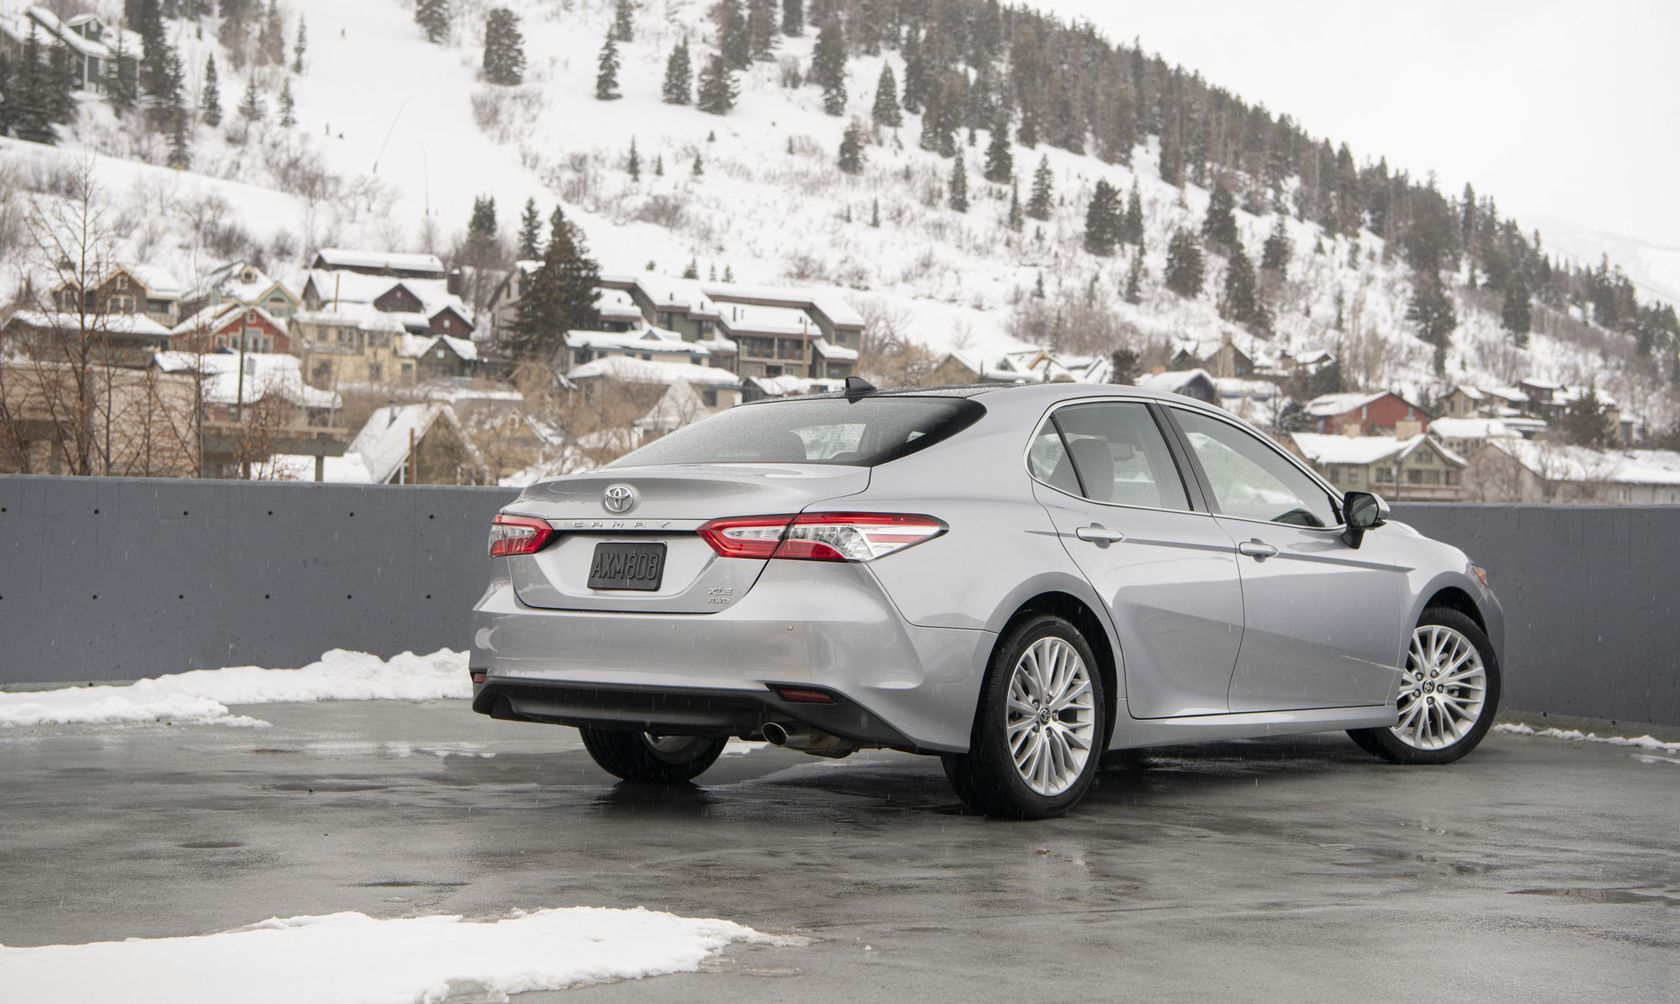 2020_Camry_XLE_AWD_Celestite-Silver_031-scaled